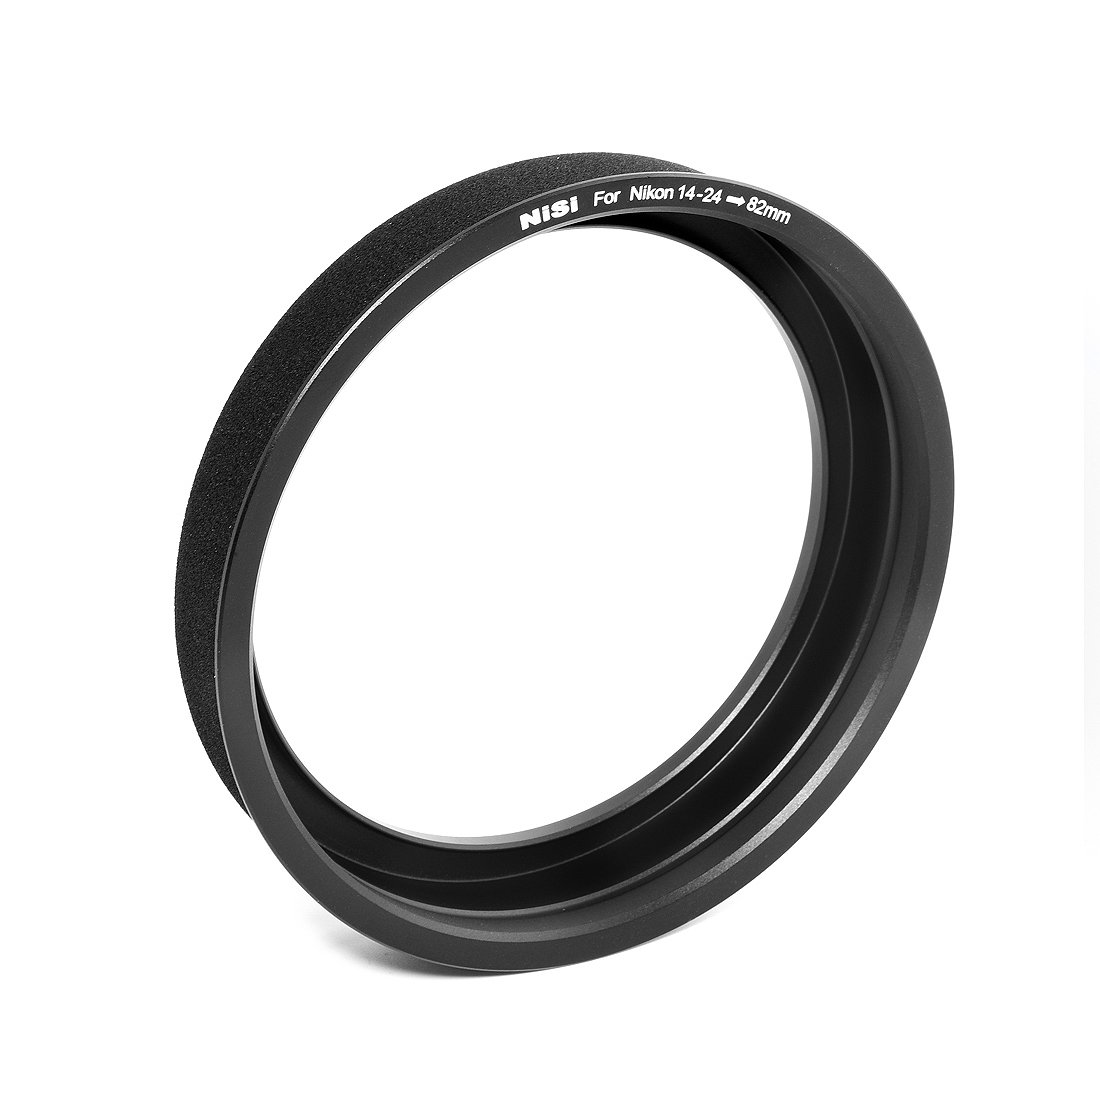 NiSi 77mm Adapter Ring For Nikon 14-24mm F2.8 (For Q-series) NiSi Filters Canada